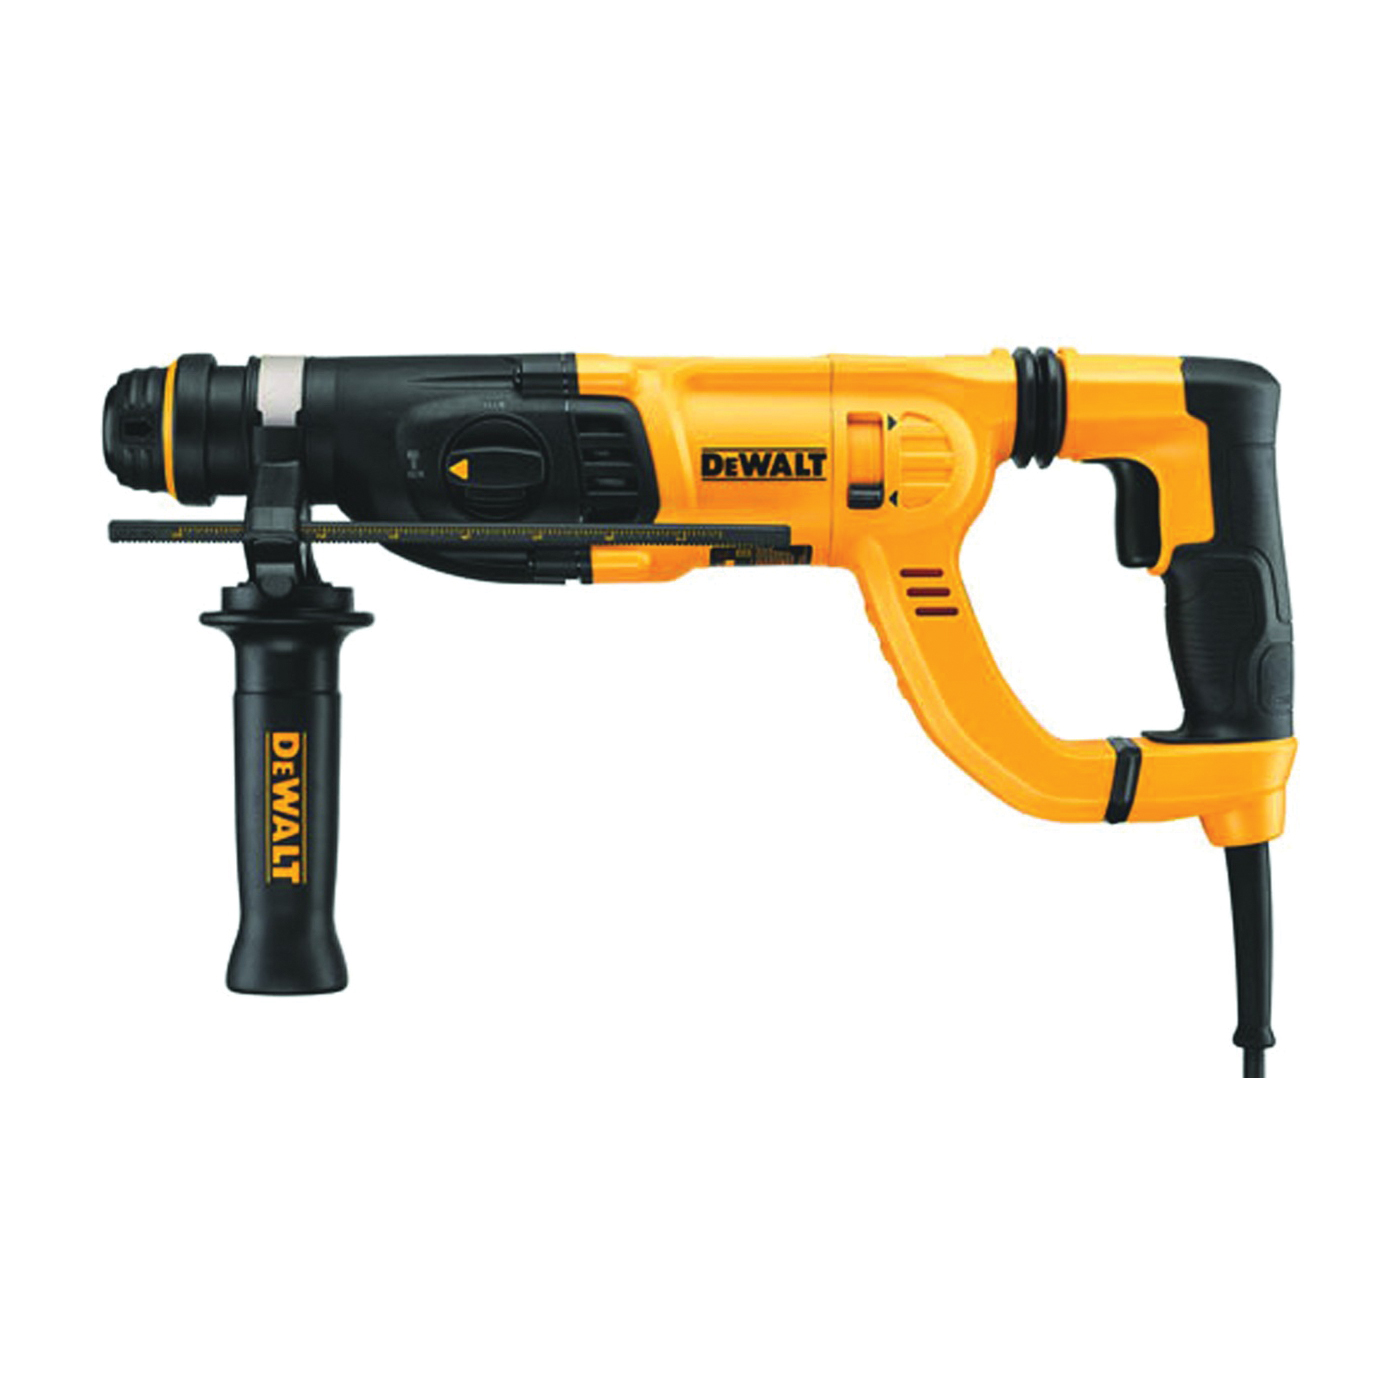 Picture of DeWALT D25262K Rotary Hammer Kit, 120 V, 5/32 to 5/8 in Drilling, 1 in Chuck, SDS-Plus Chuck, 0 to 1500 rpm Speed